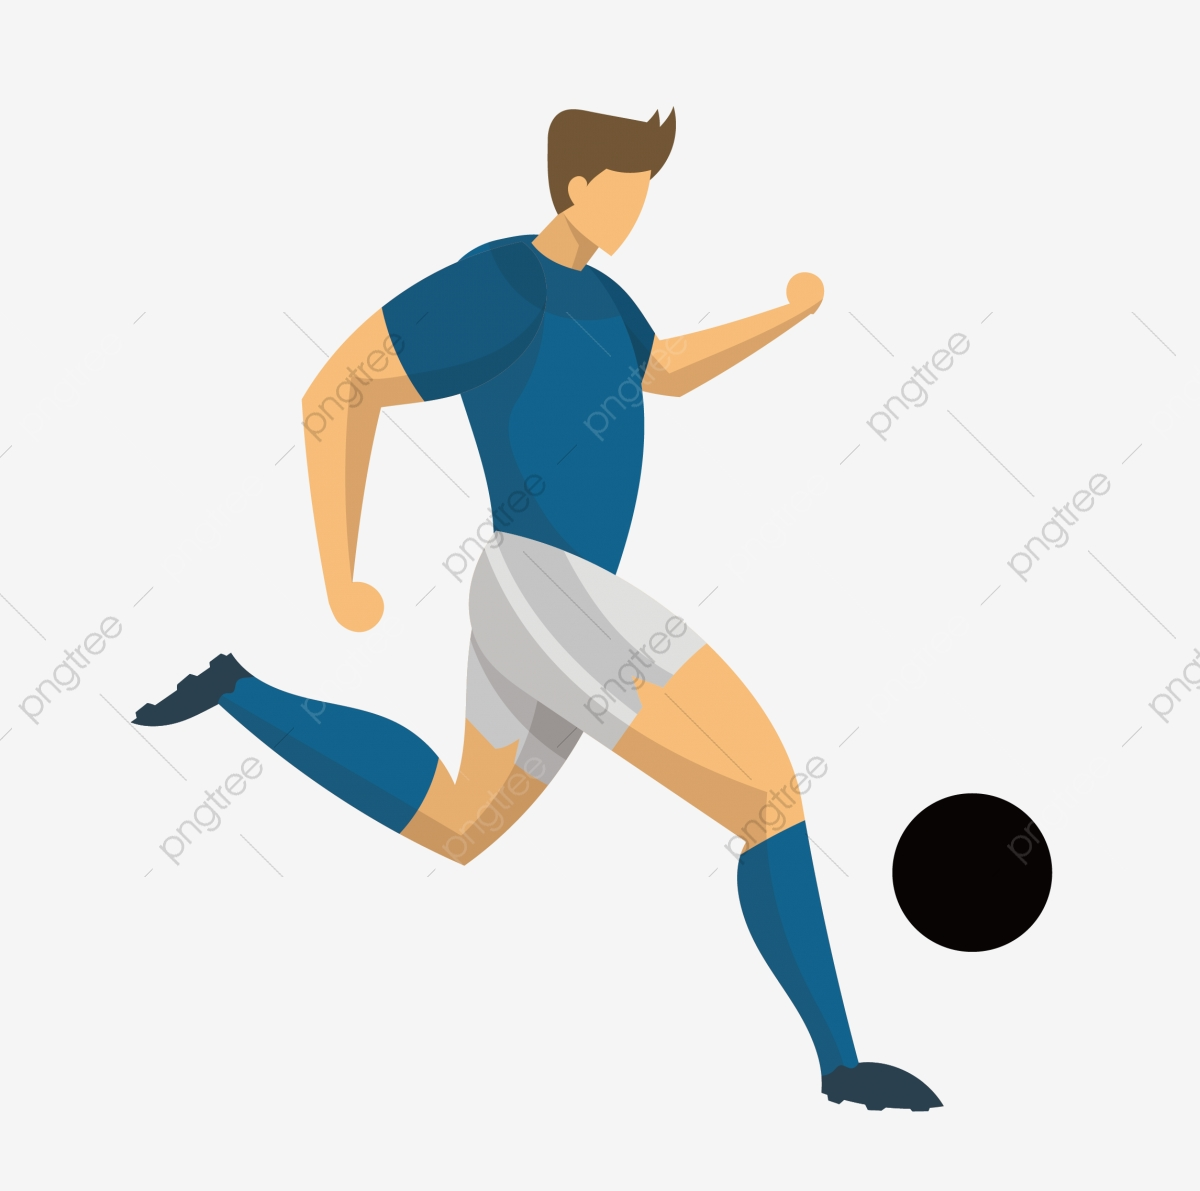 Football Soccer Player Athlete Cartoon Cartoon Athlete Lovely Cute Athlete Png And Vector With Transparent Background For Free Download